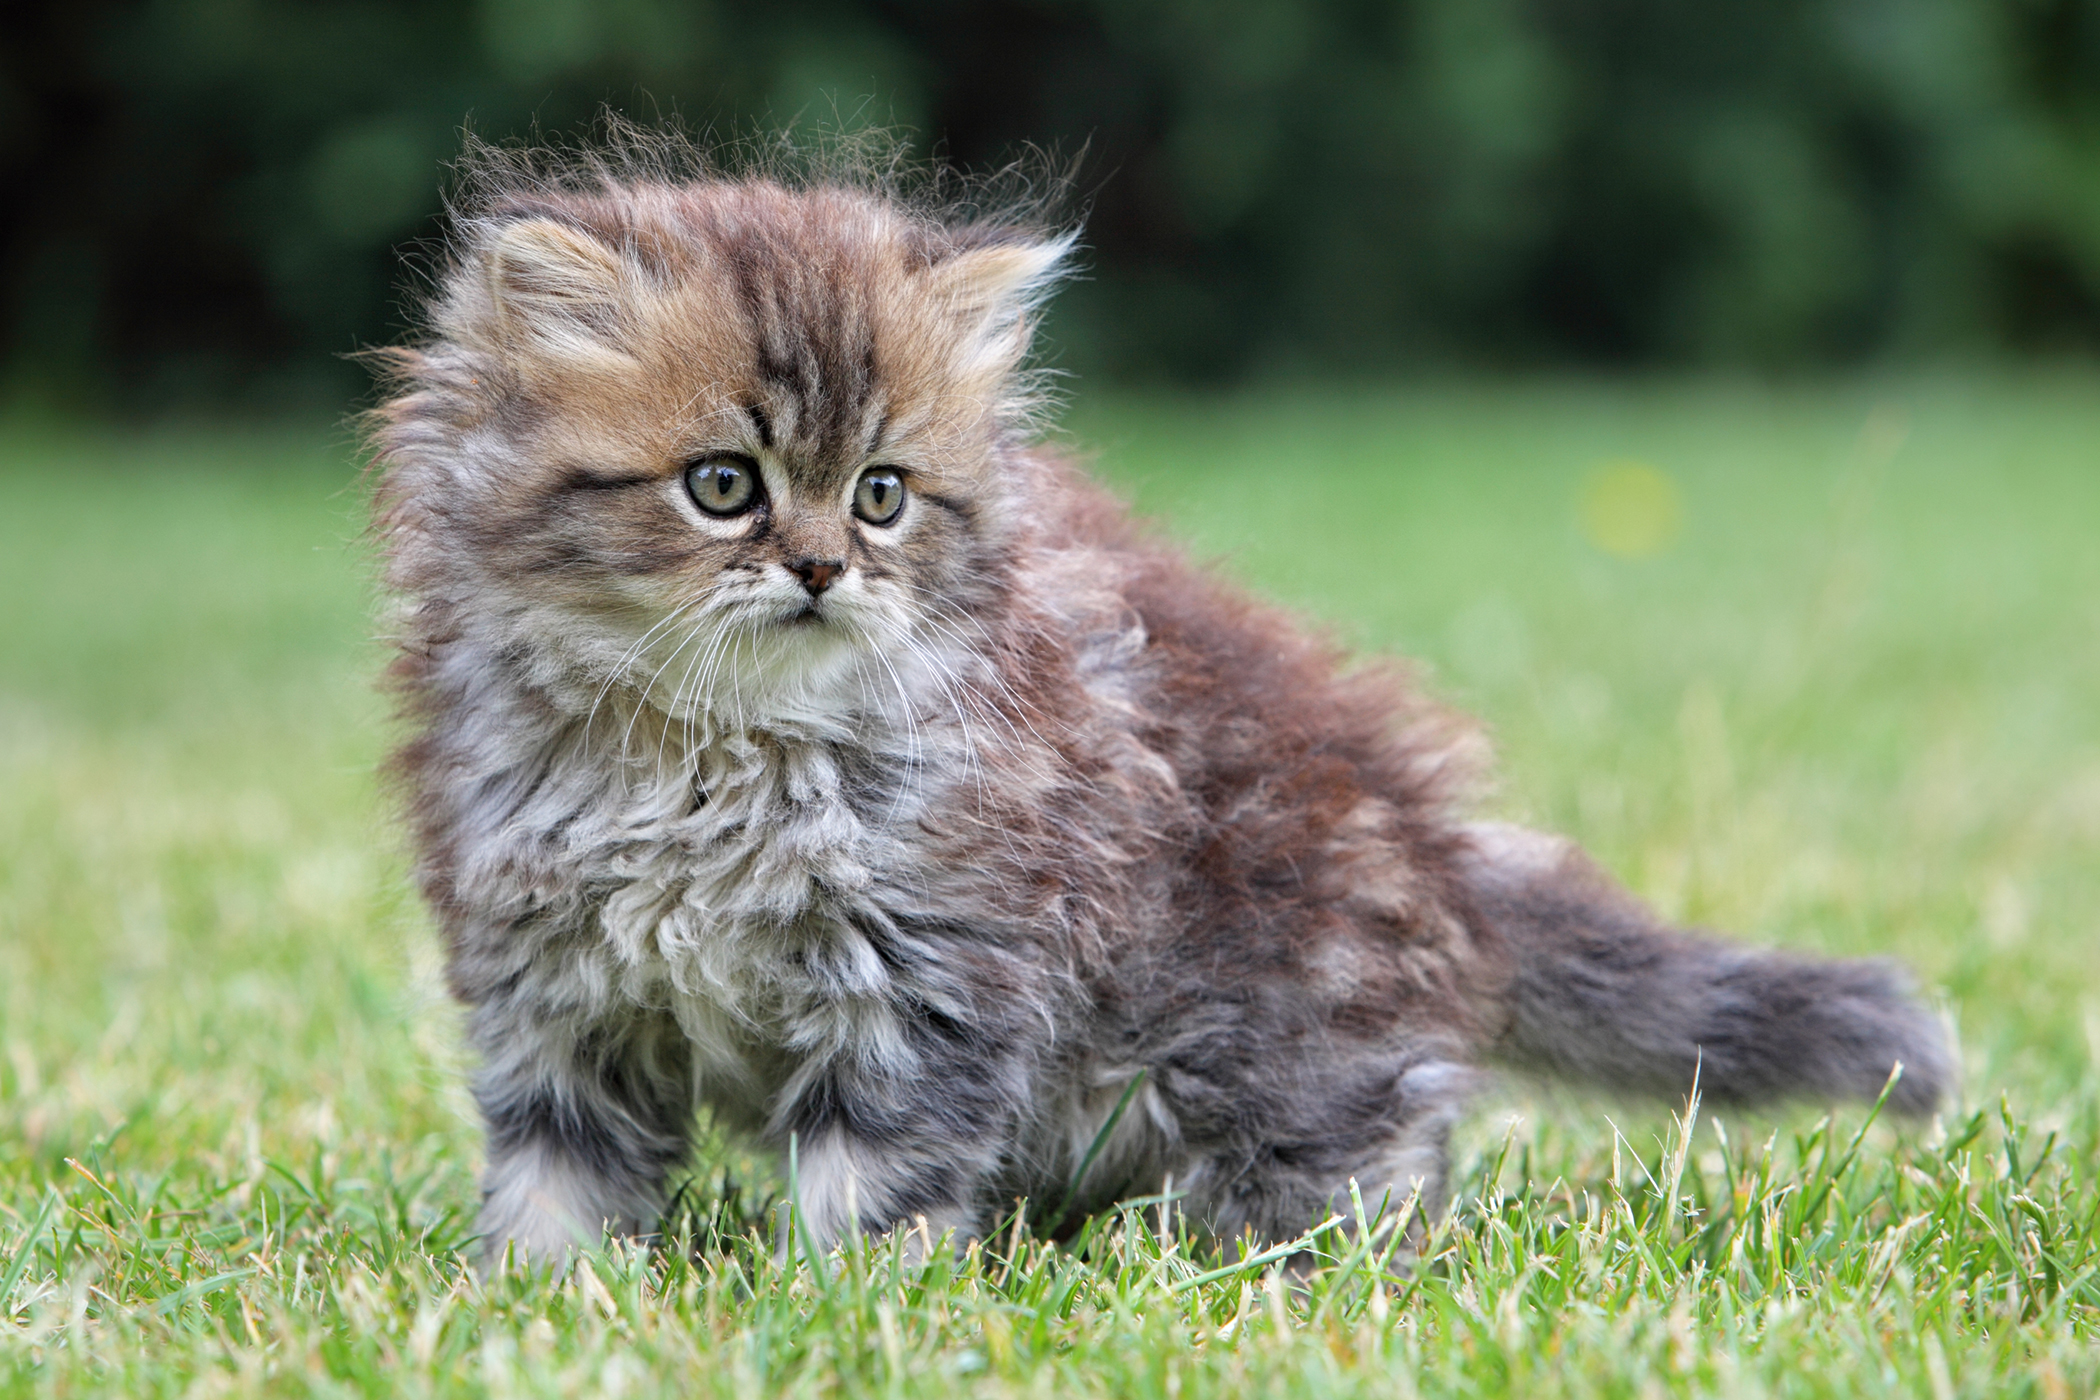 Whitmore's Disease in Cats